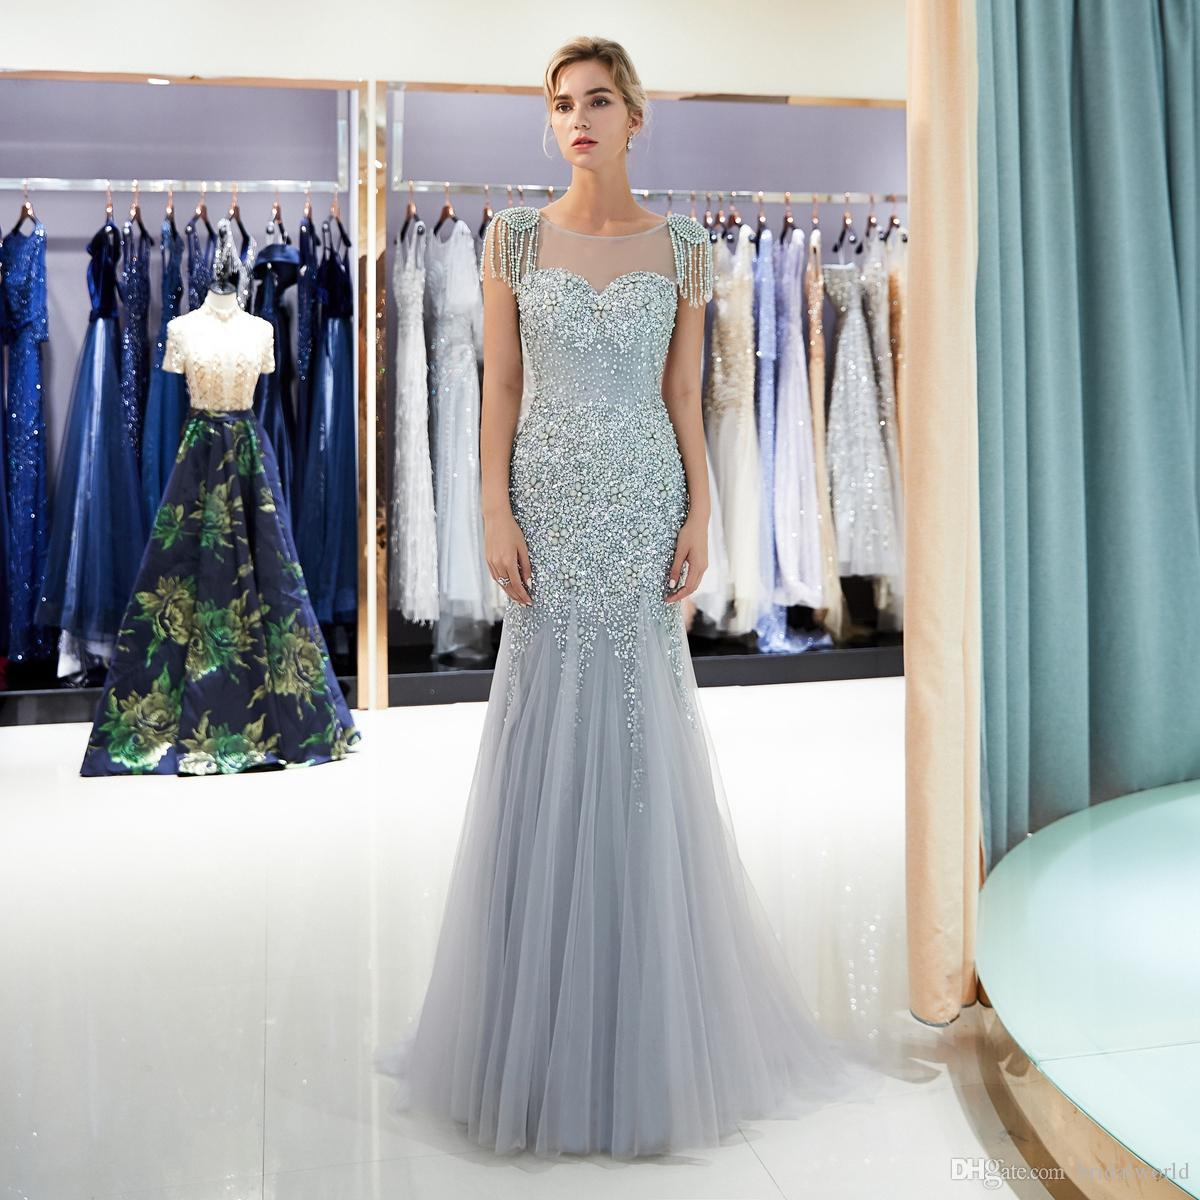 Gray Evening Dresses Beaded Pearl Sequined Prom Gowns Gold Mermaid Short Sleeves Vestidos Formal Para Mujer Handwork Sheer Neck Weddings & Events